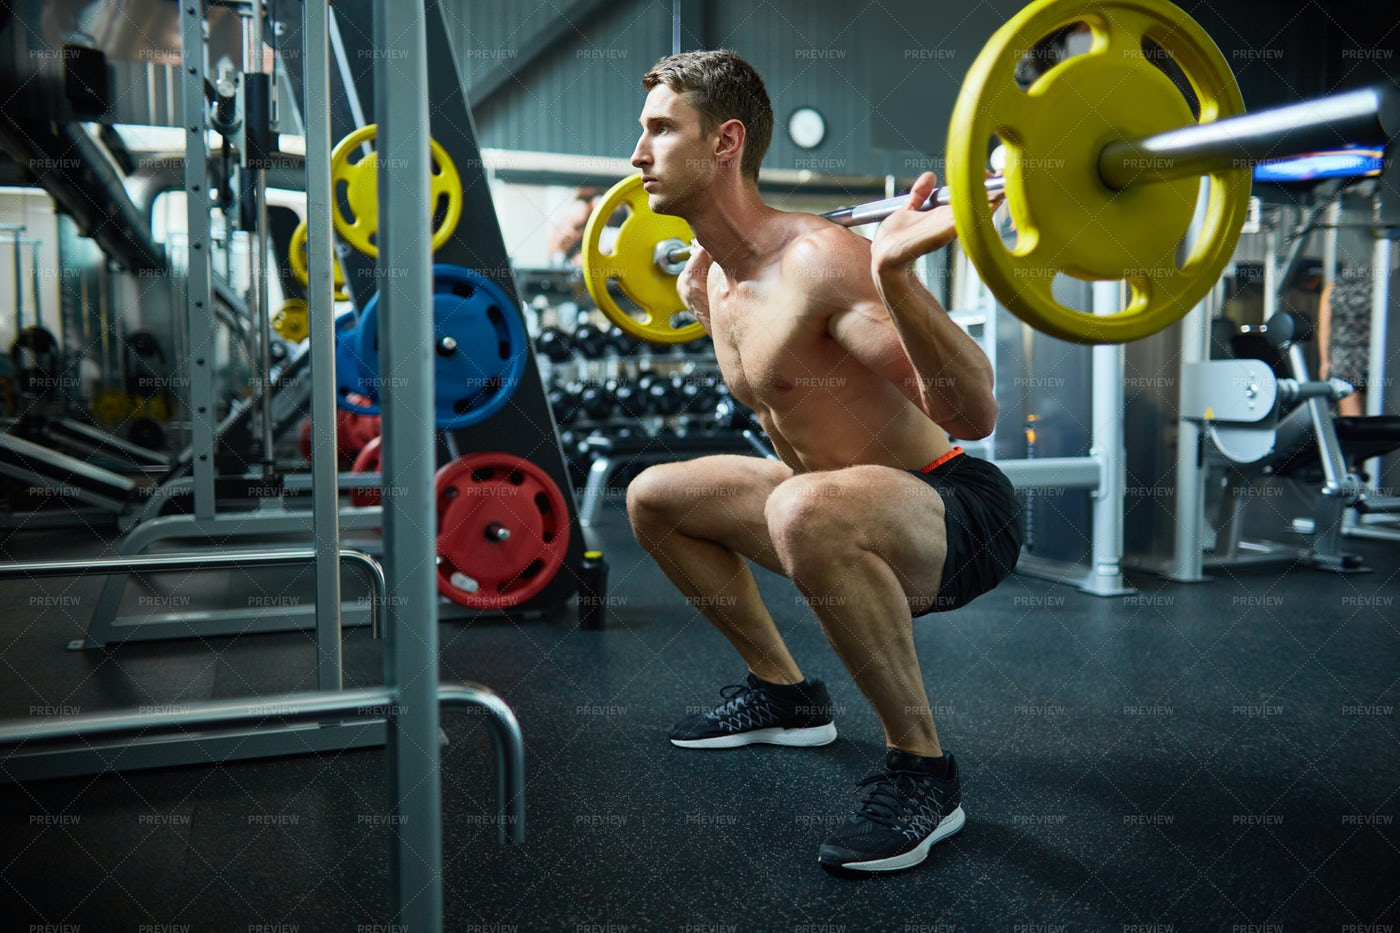 Handsome Man Squatting With Barbell: Stock Photos